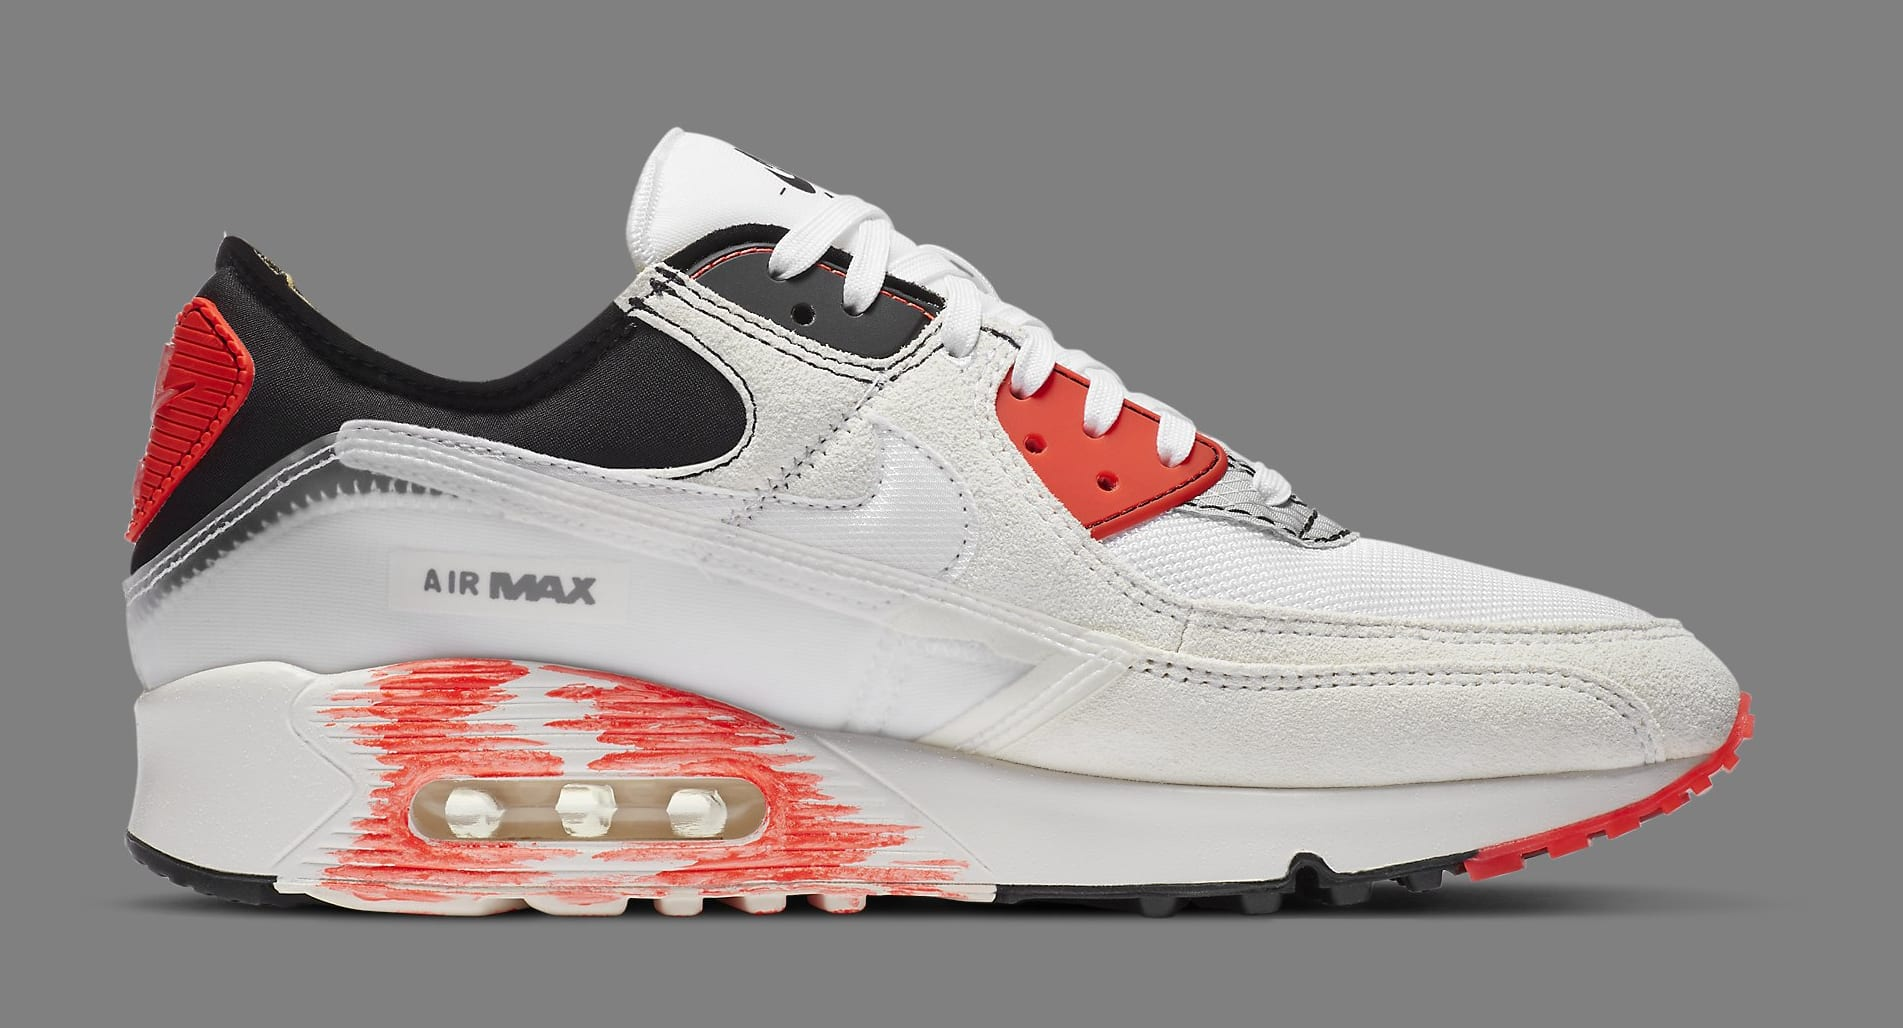 Nike Air Max 90 'Archetype' DC7856-100 Medial